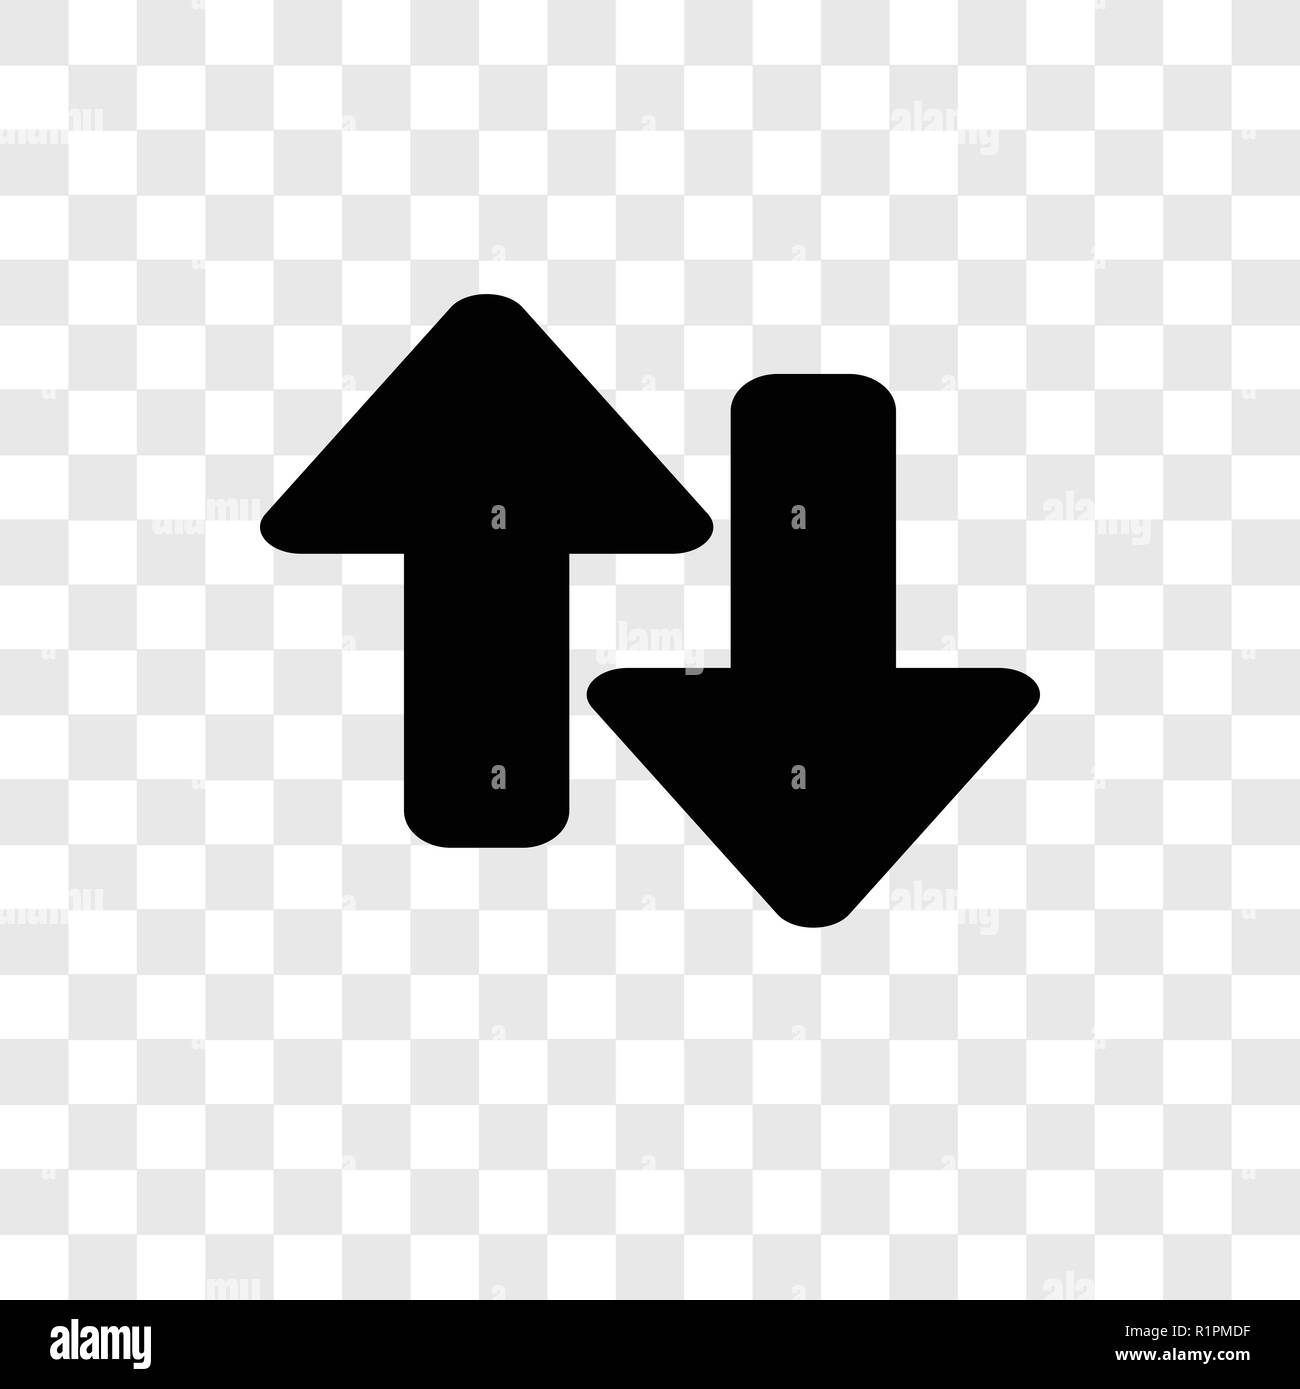 Up and Down Arrows vector icon isolated on transparent